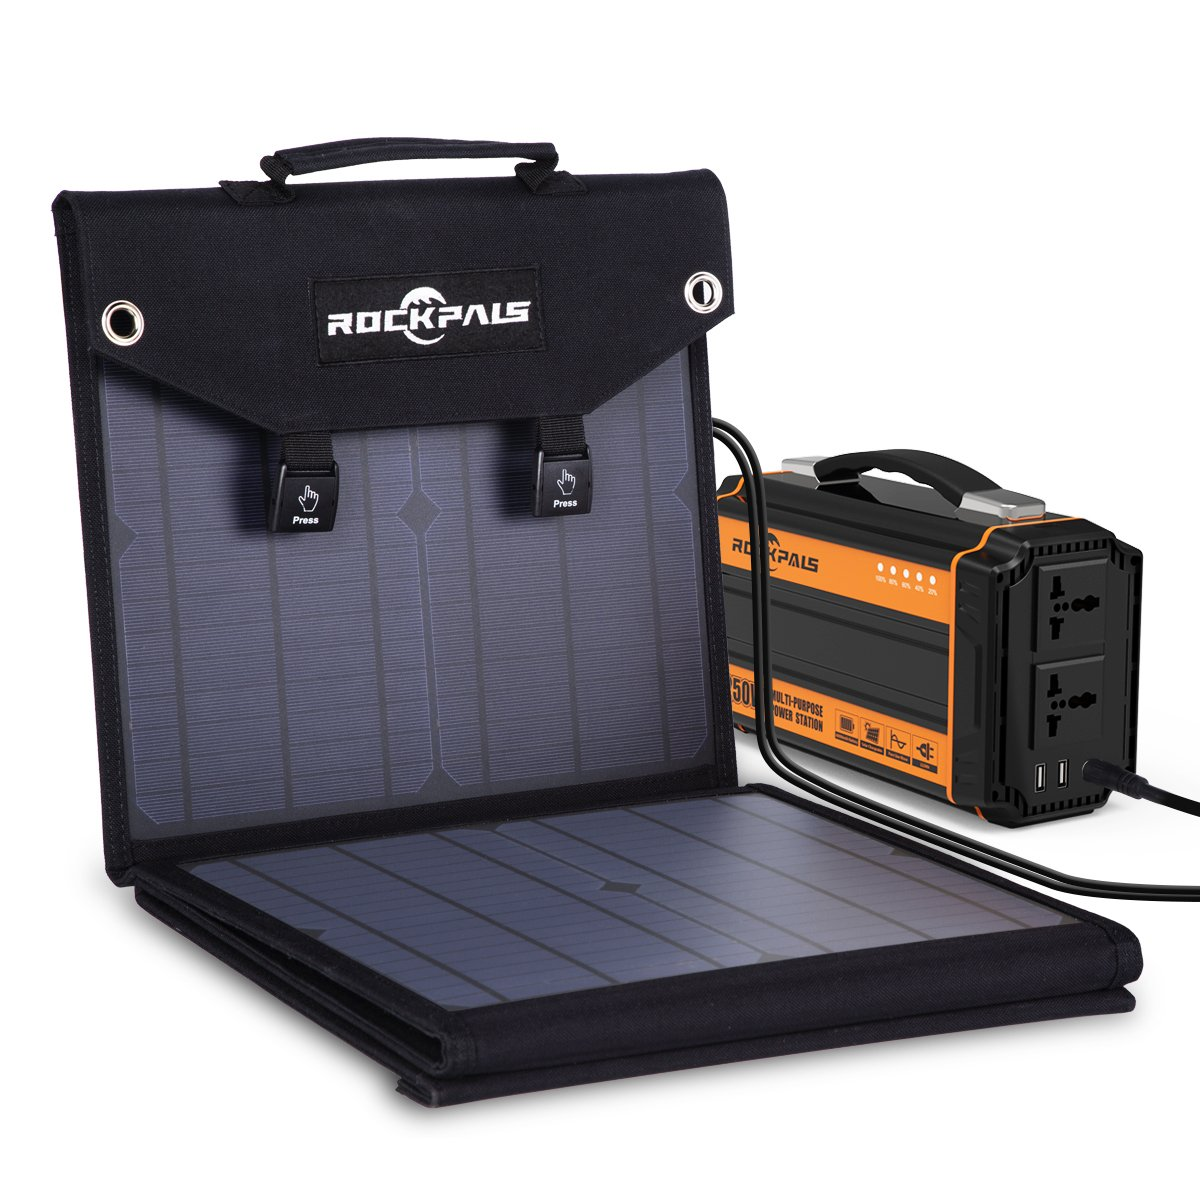 Rockpals Foldable 60W Solar Panel Charger for Suaoki Portable Generator/Goal Zero Yeti 100/150/400 Power Station/Paxcess Battery Pack/USB Devices, QC3.0 USB Ports by Rockpals (Image #4)